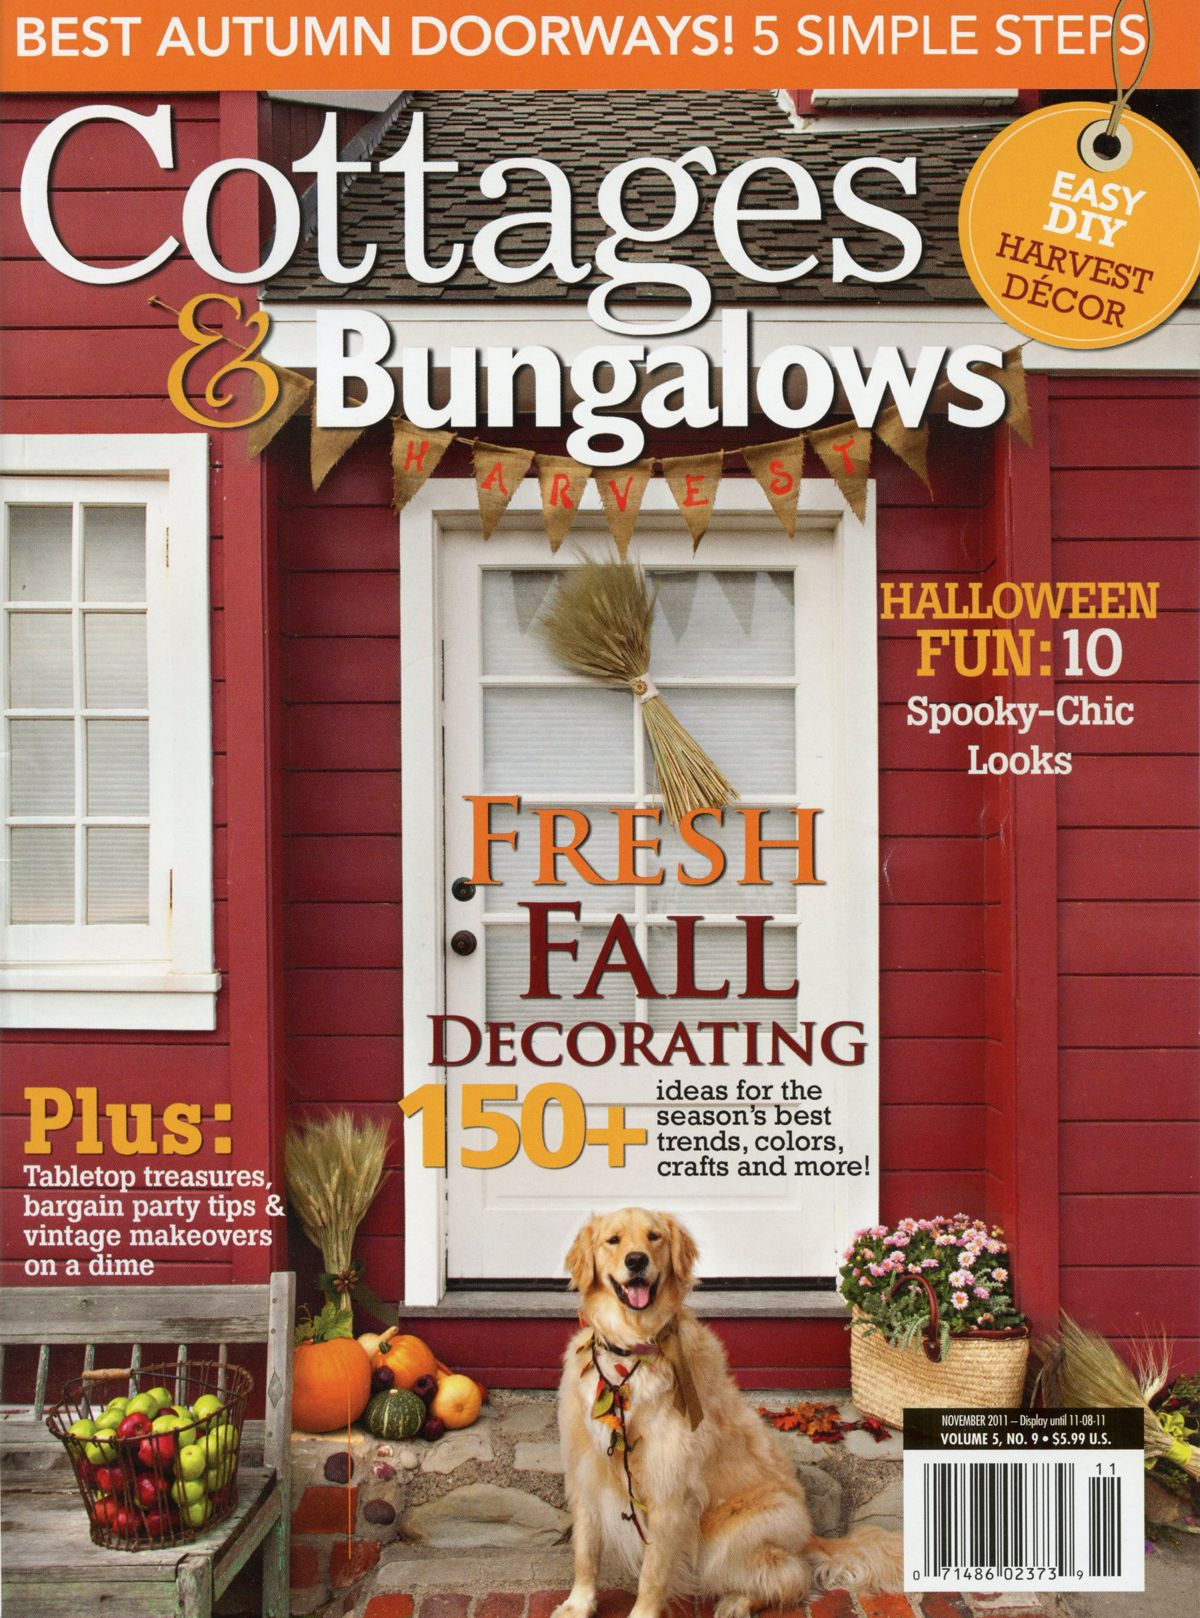 Flipping Home Decor Catalogs Are A Great Way To Get Some Free Design And Decorating Ideas For Your More Details Can Be Found By Clicking On The